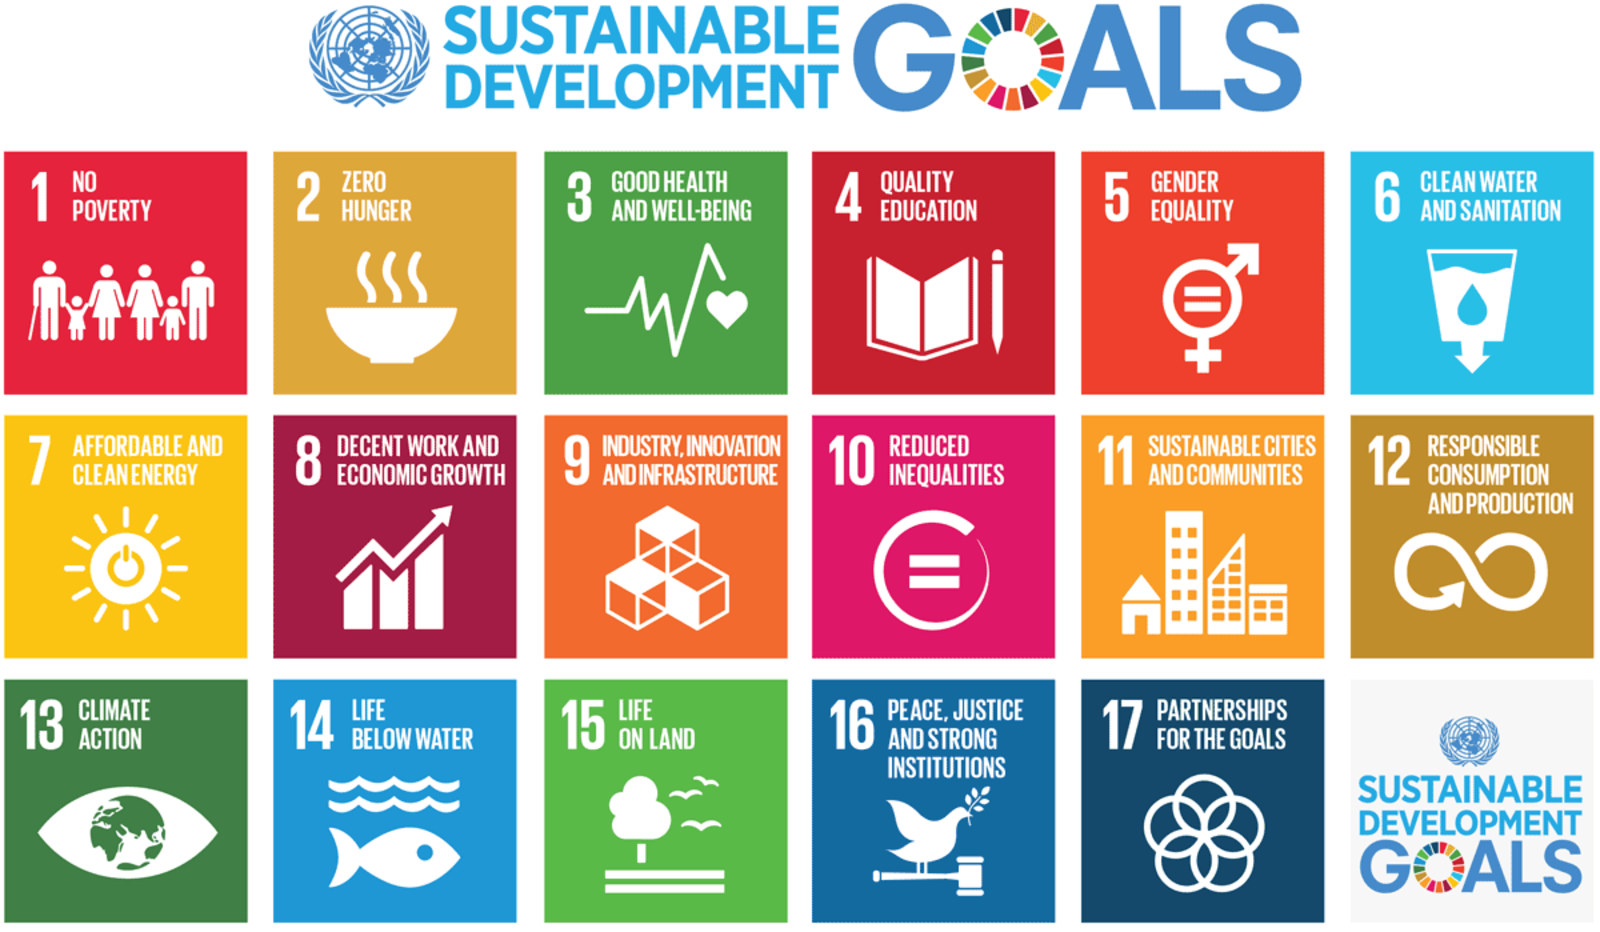 Fig 1: The Sustainable Development Goals